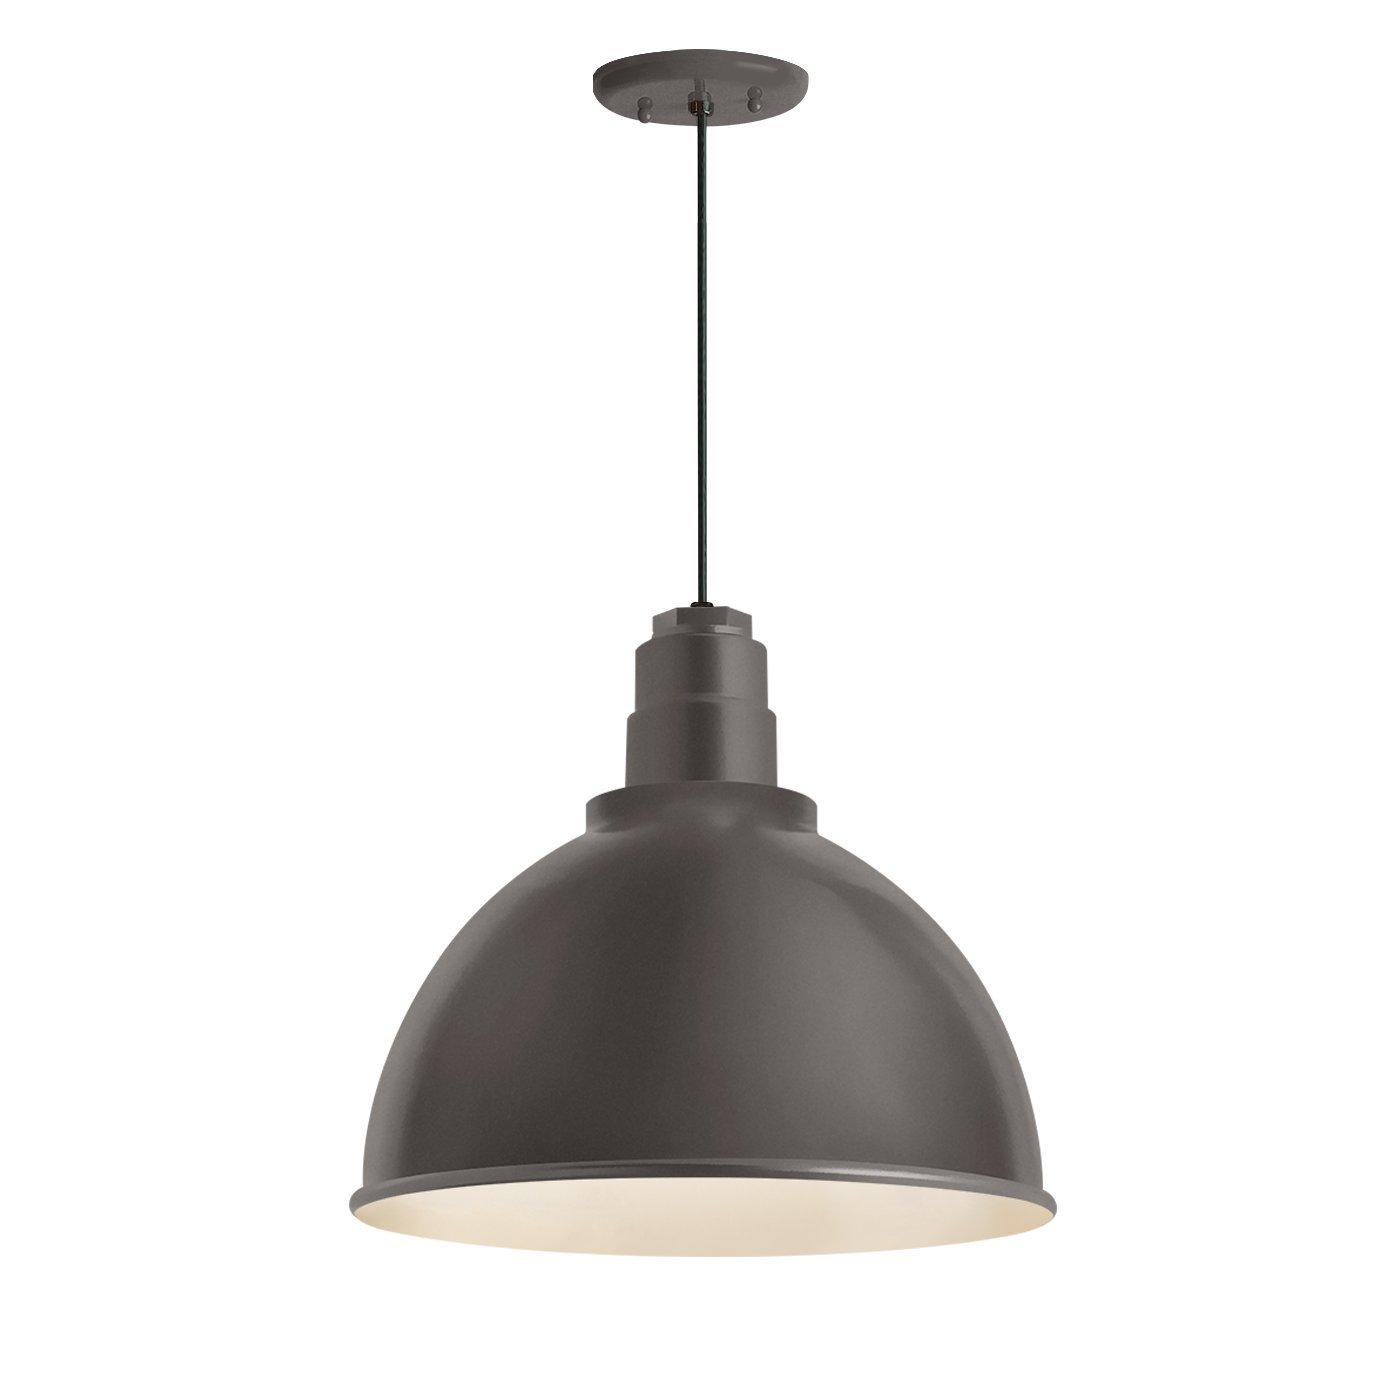 Troy RLM 5DRD12MTBZ-BC Deep Reflector Outdoor Pendant, Textured Bronze by Troy RLM